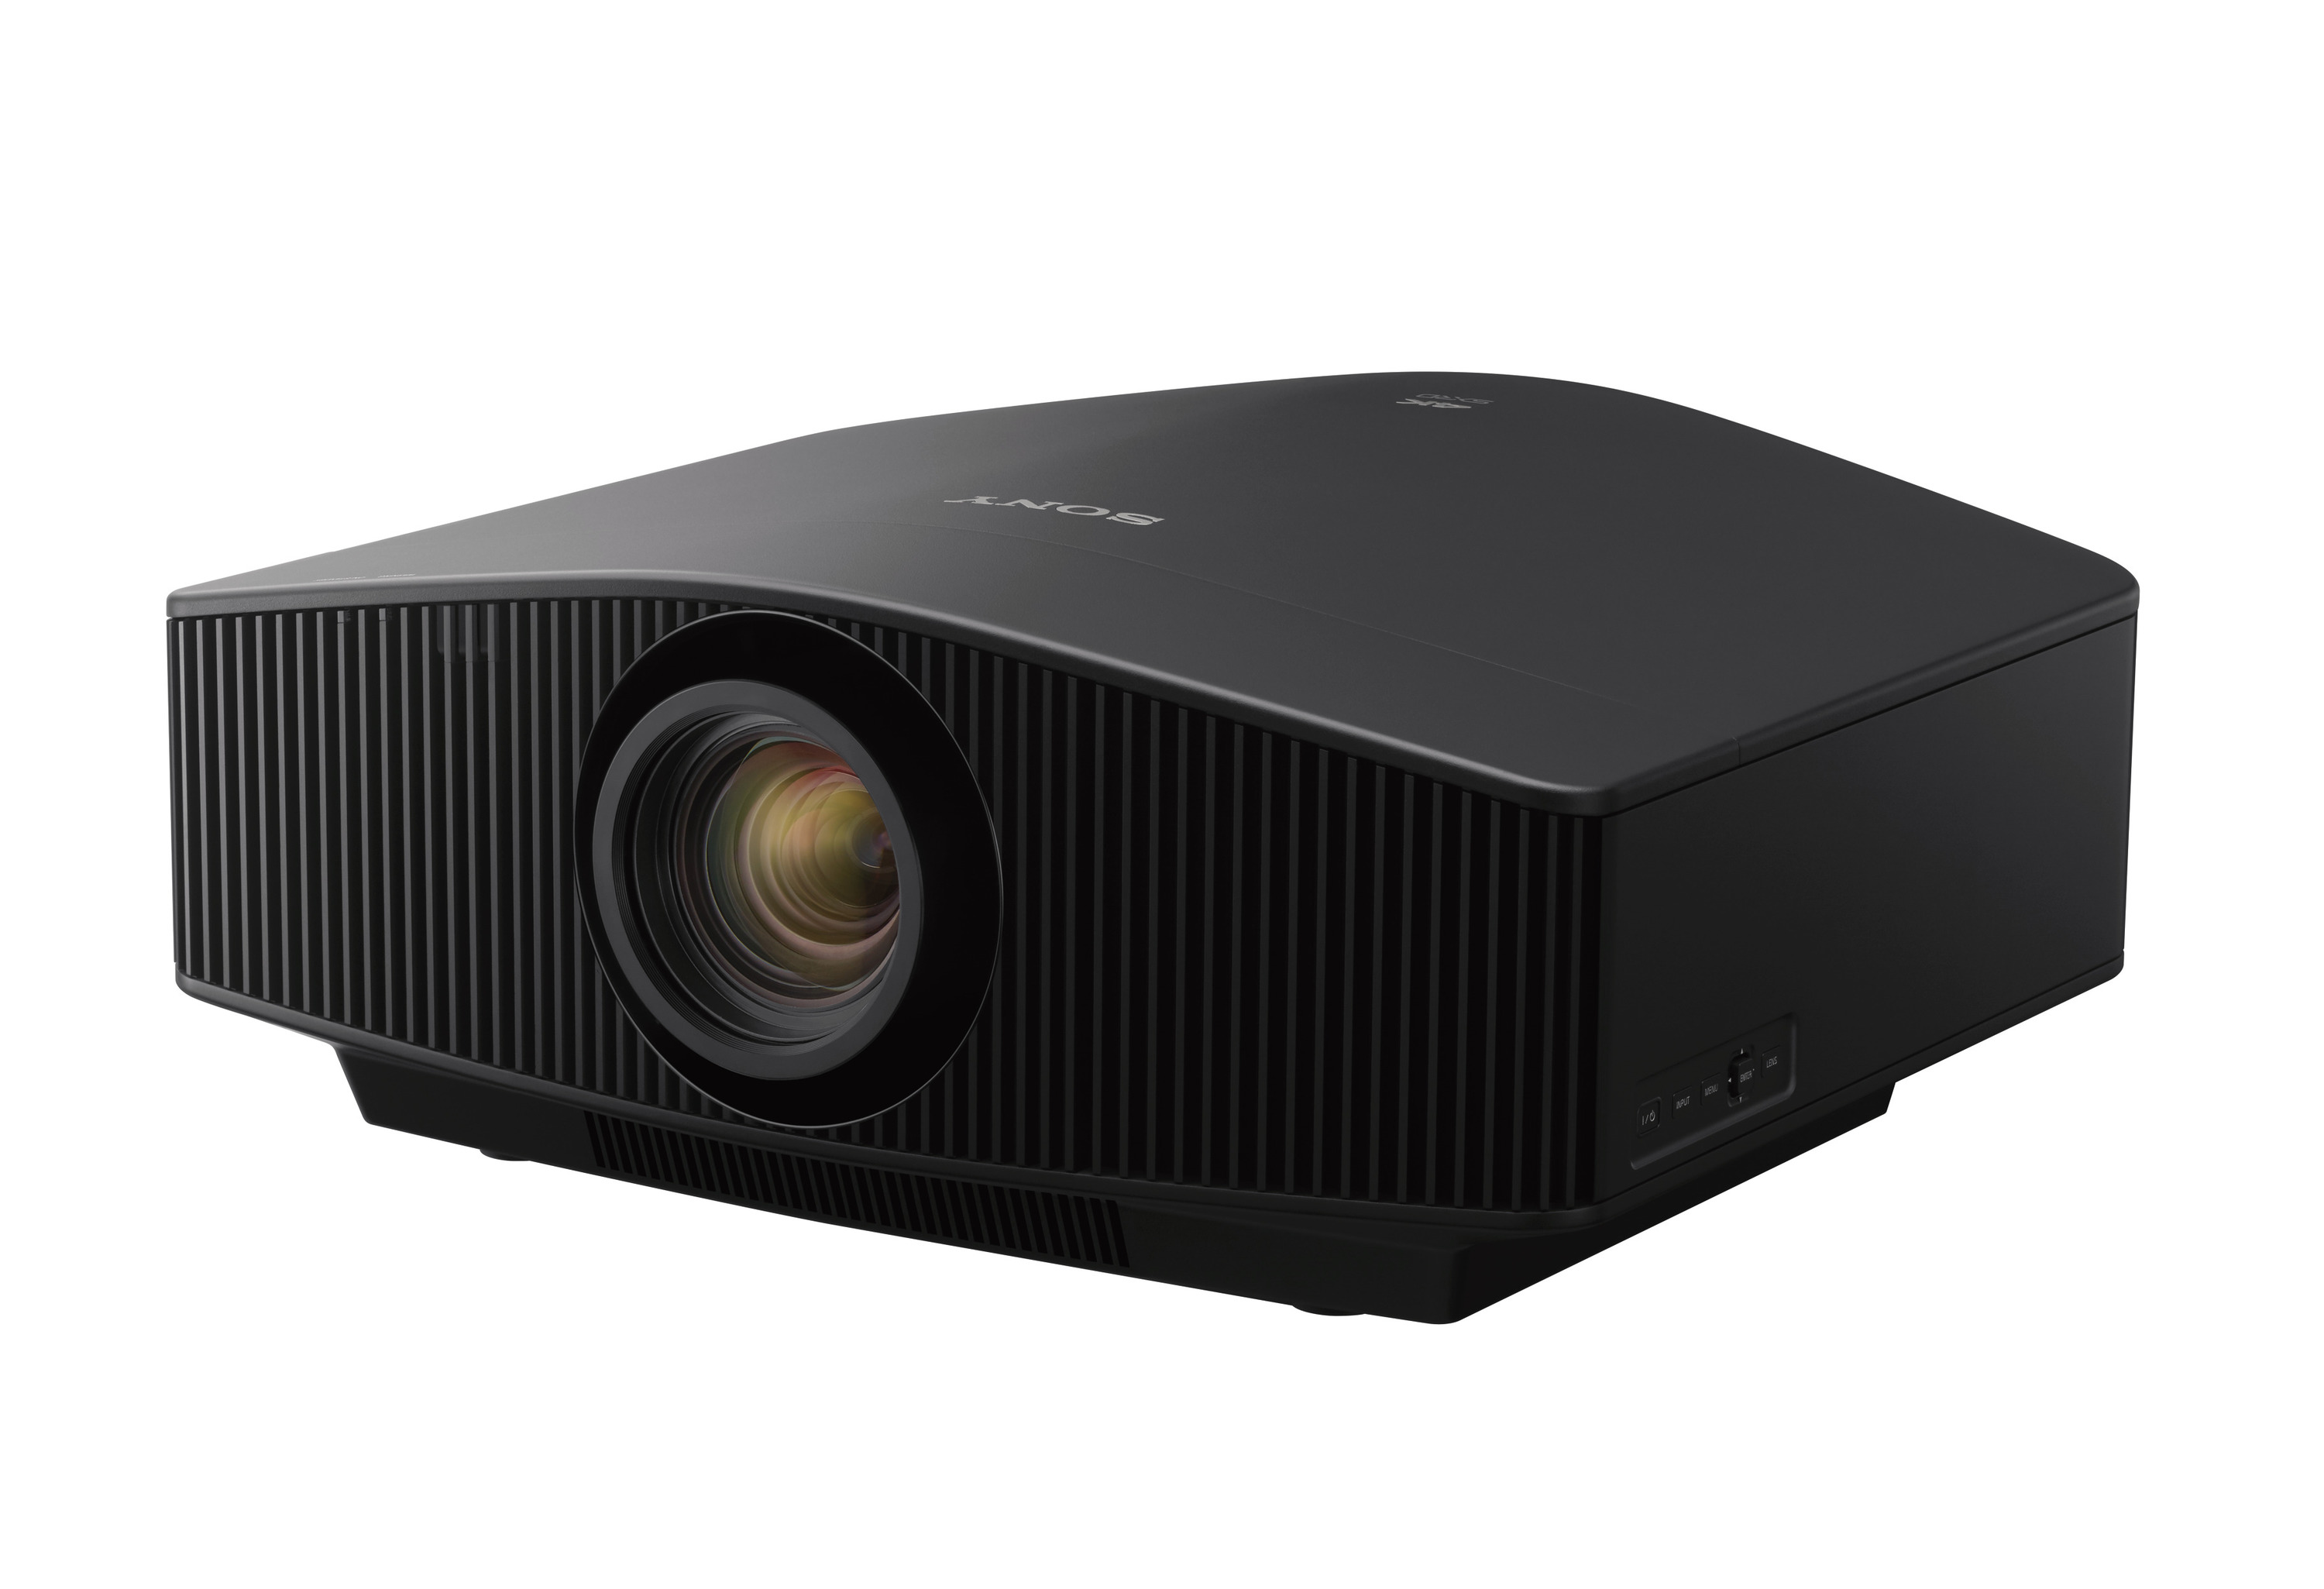 Sony Launches Three New 4K HDR Home Cinema Projectors, Including the Premium VPL-VW870ES with ARC-F lens